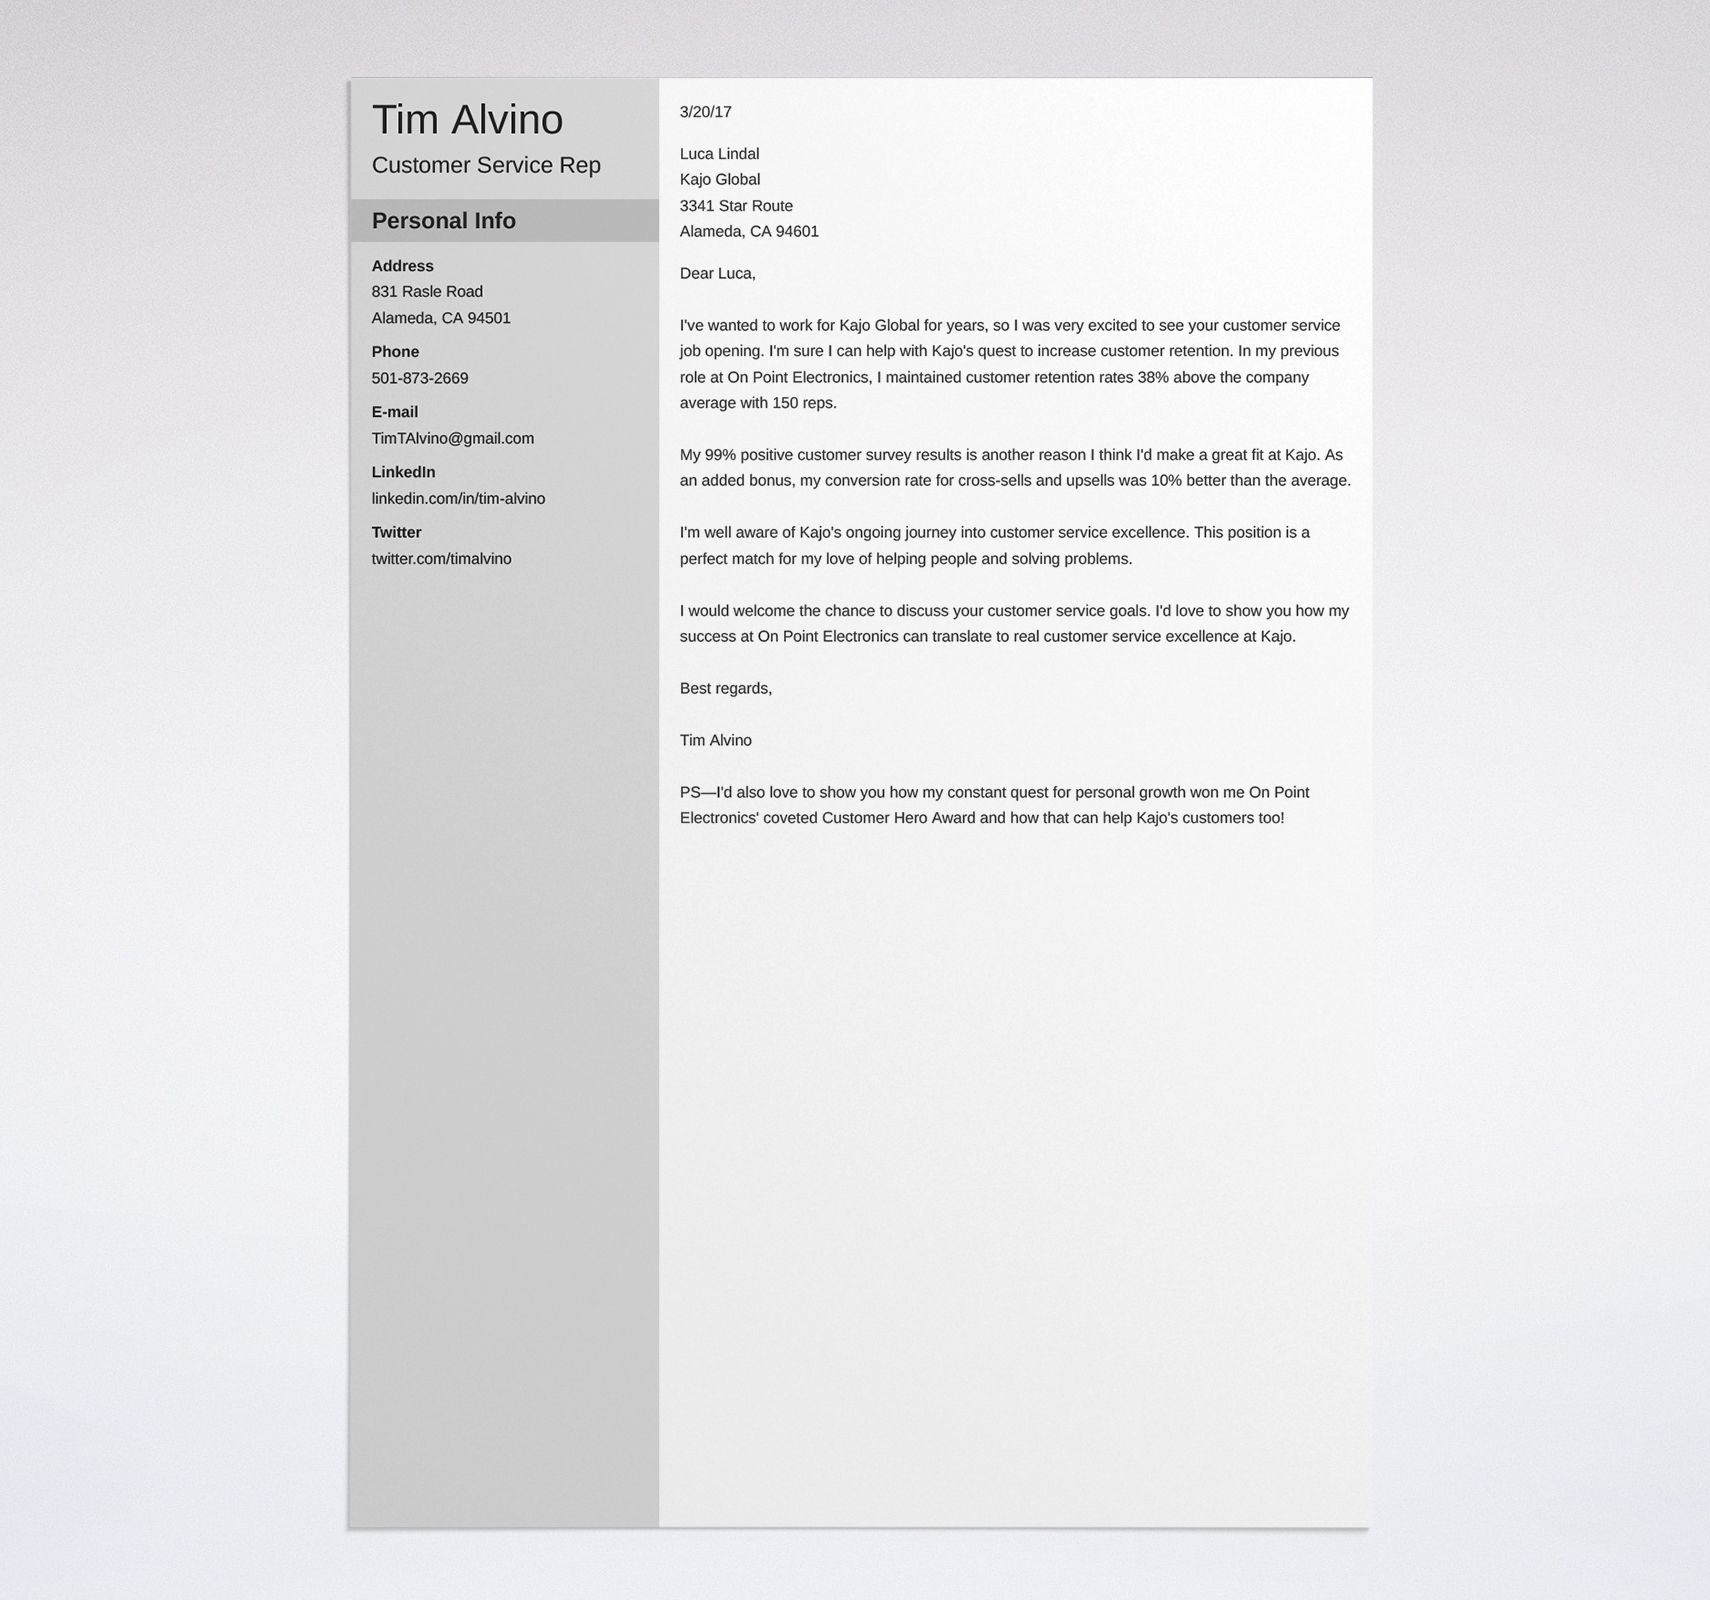 Free Cover Letter Examples for Jobs: 10+ Best Samples [Guides & Tips]